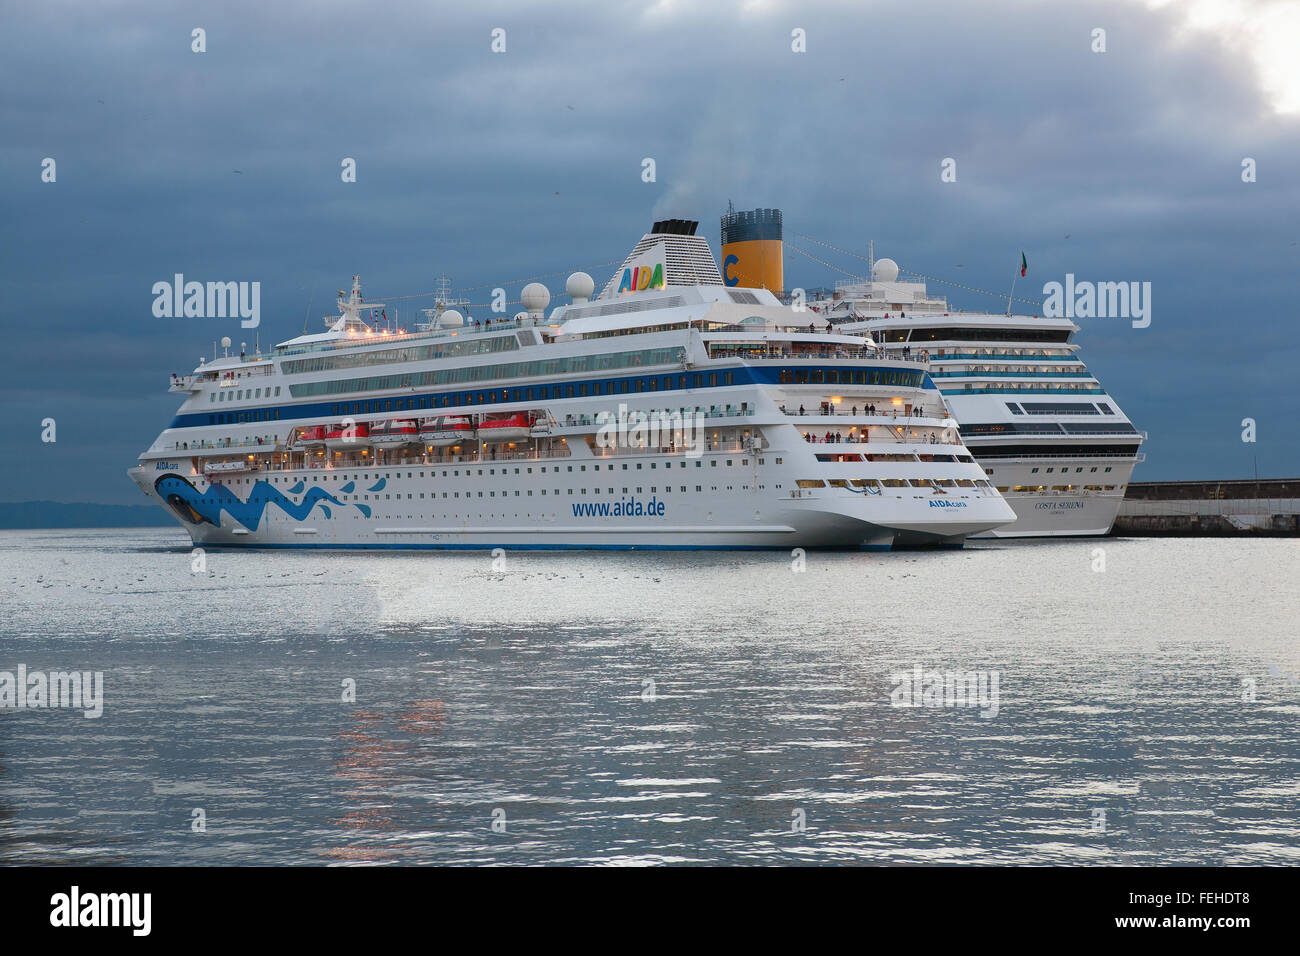 Two Cruise ships docked in Funchal, Madeira - Stock Image